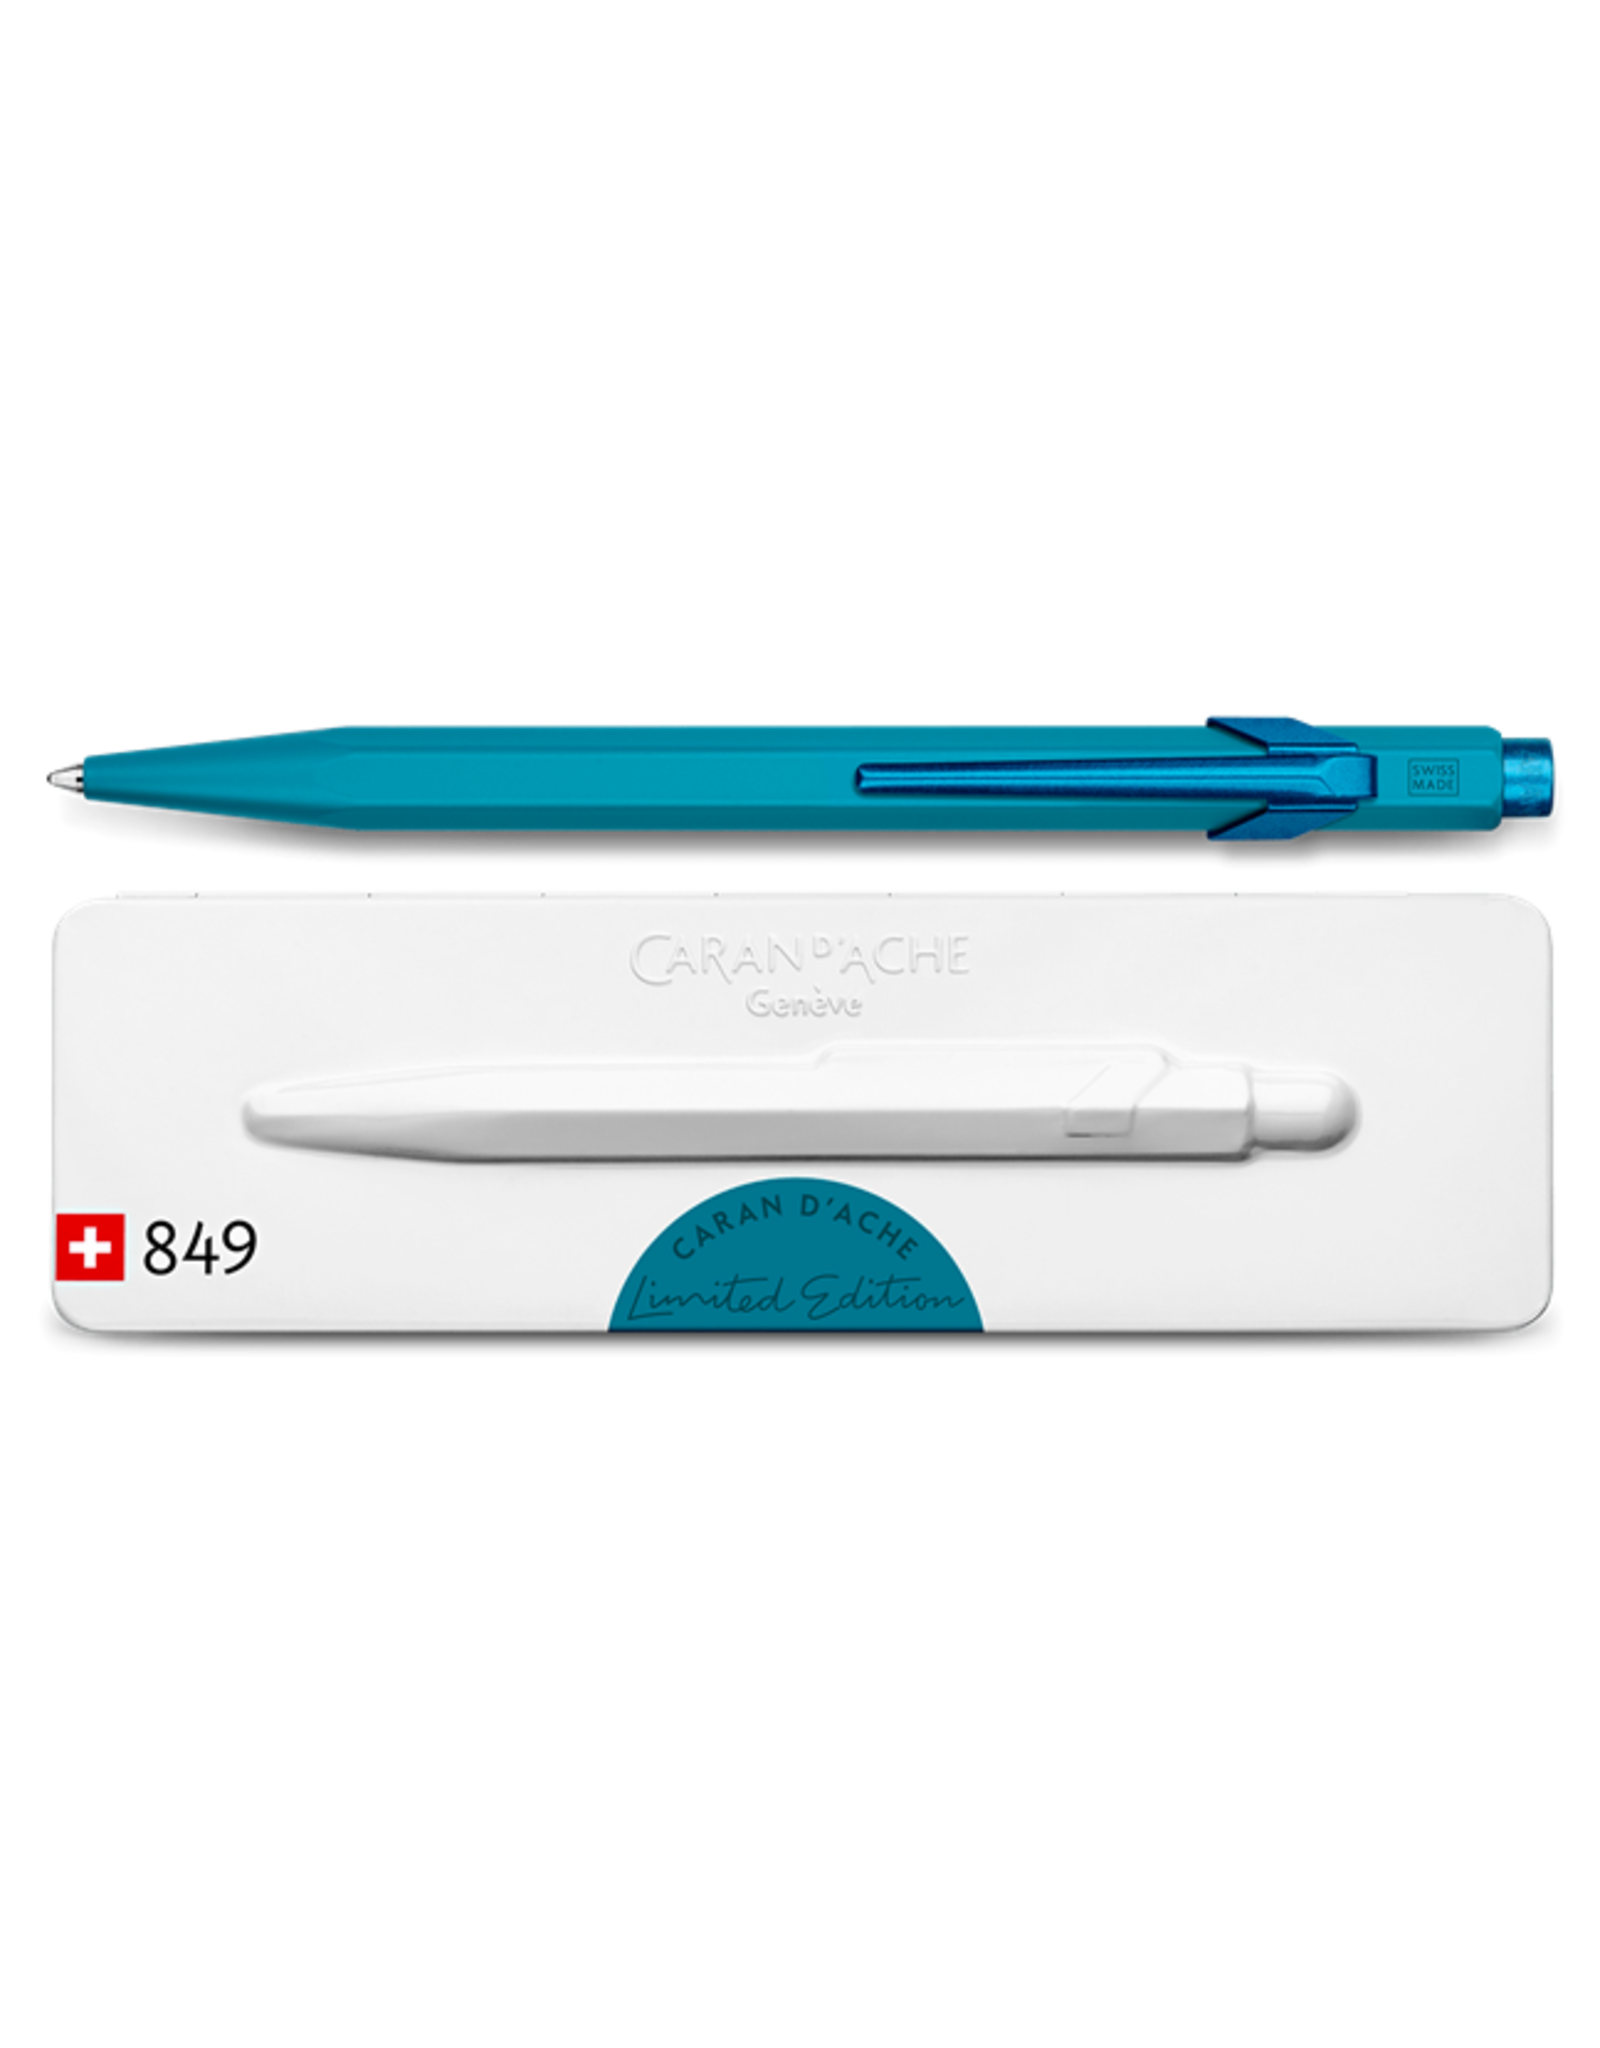 Caran d'Ache Ballpoint Pen 849 CLAIM YOUR STYLE Limited edition